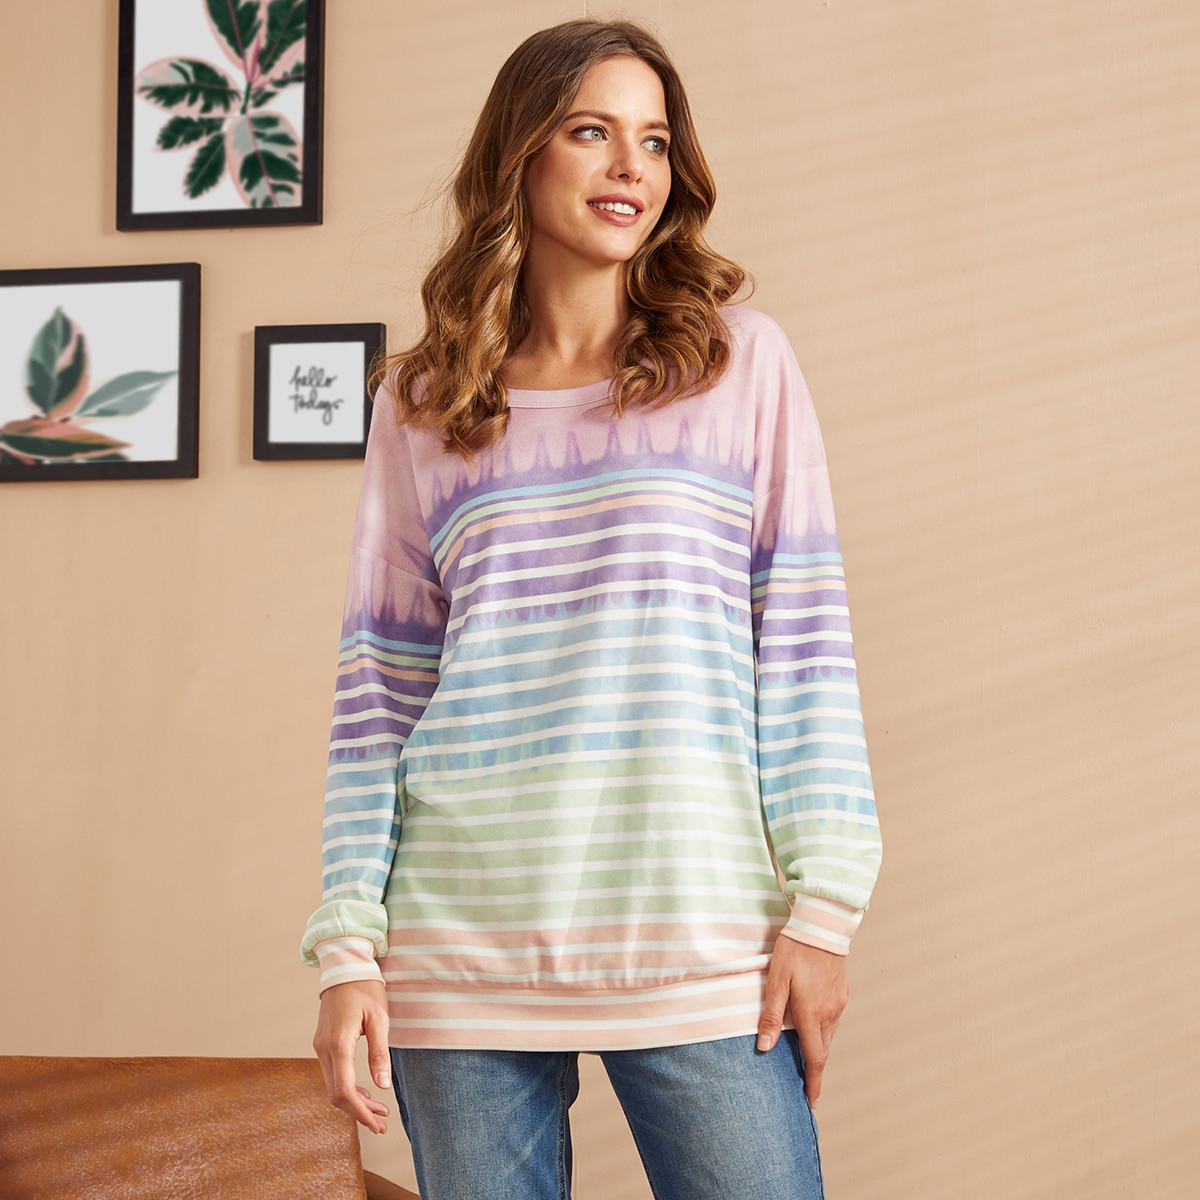 SHEIN / LUUKSE Drop Shoulder Striped Ombre Sweatshirt